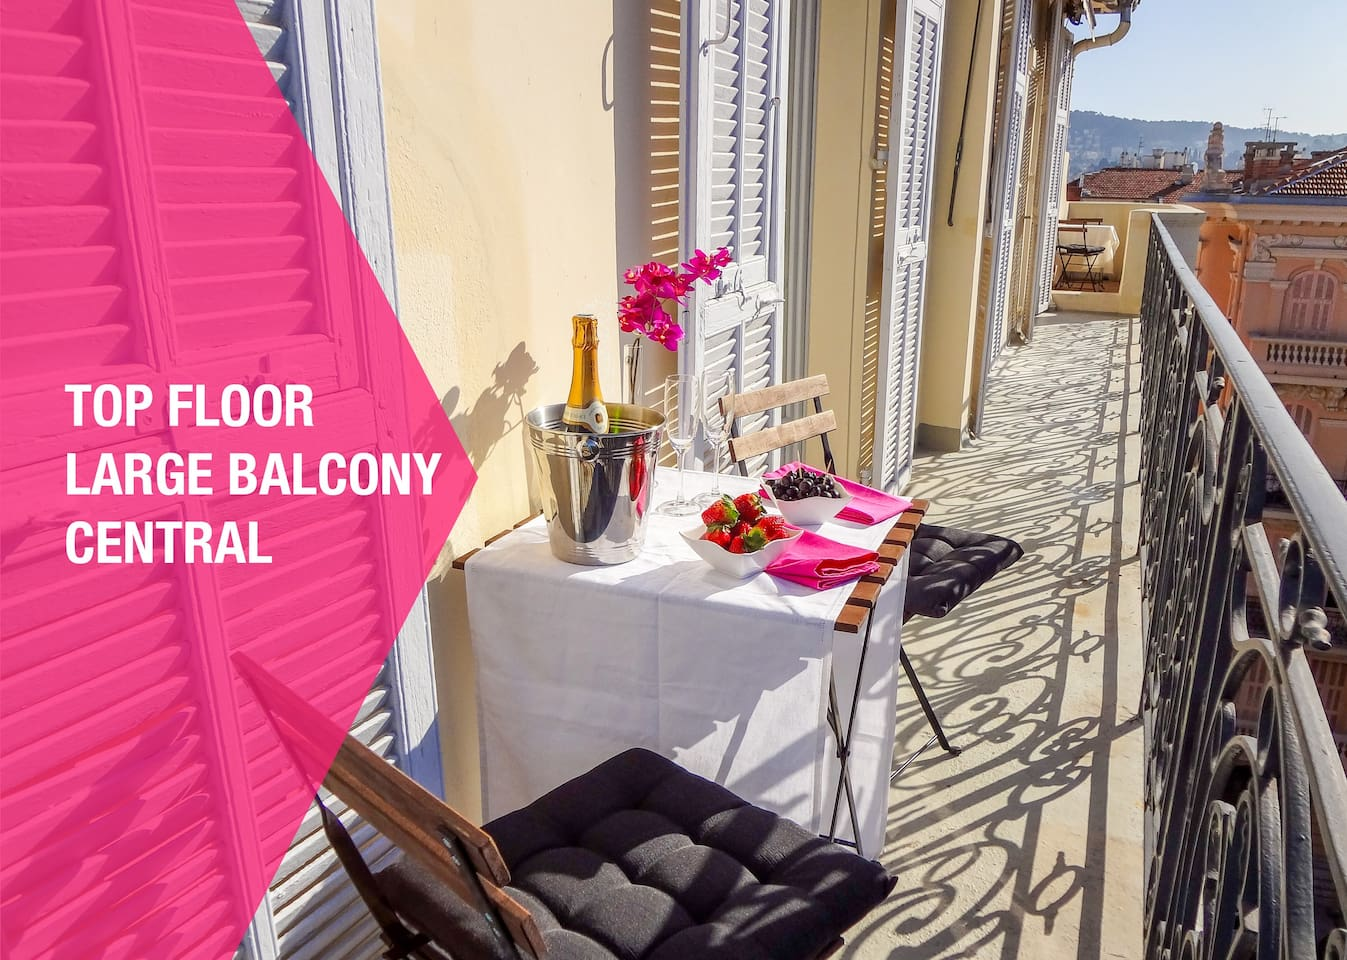 Beautiful apartment. Best of all, it comes with something that is in short supply in Nice - a very long balcony with stunning views. Enjoy dining al fresco as you take in the views over the rooftops to the hills beyond. Up here, it is hard to believe that you are in the heart of Nice!